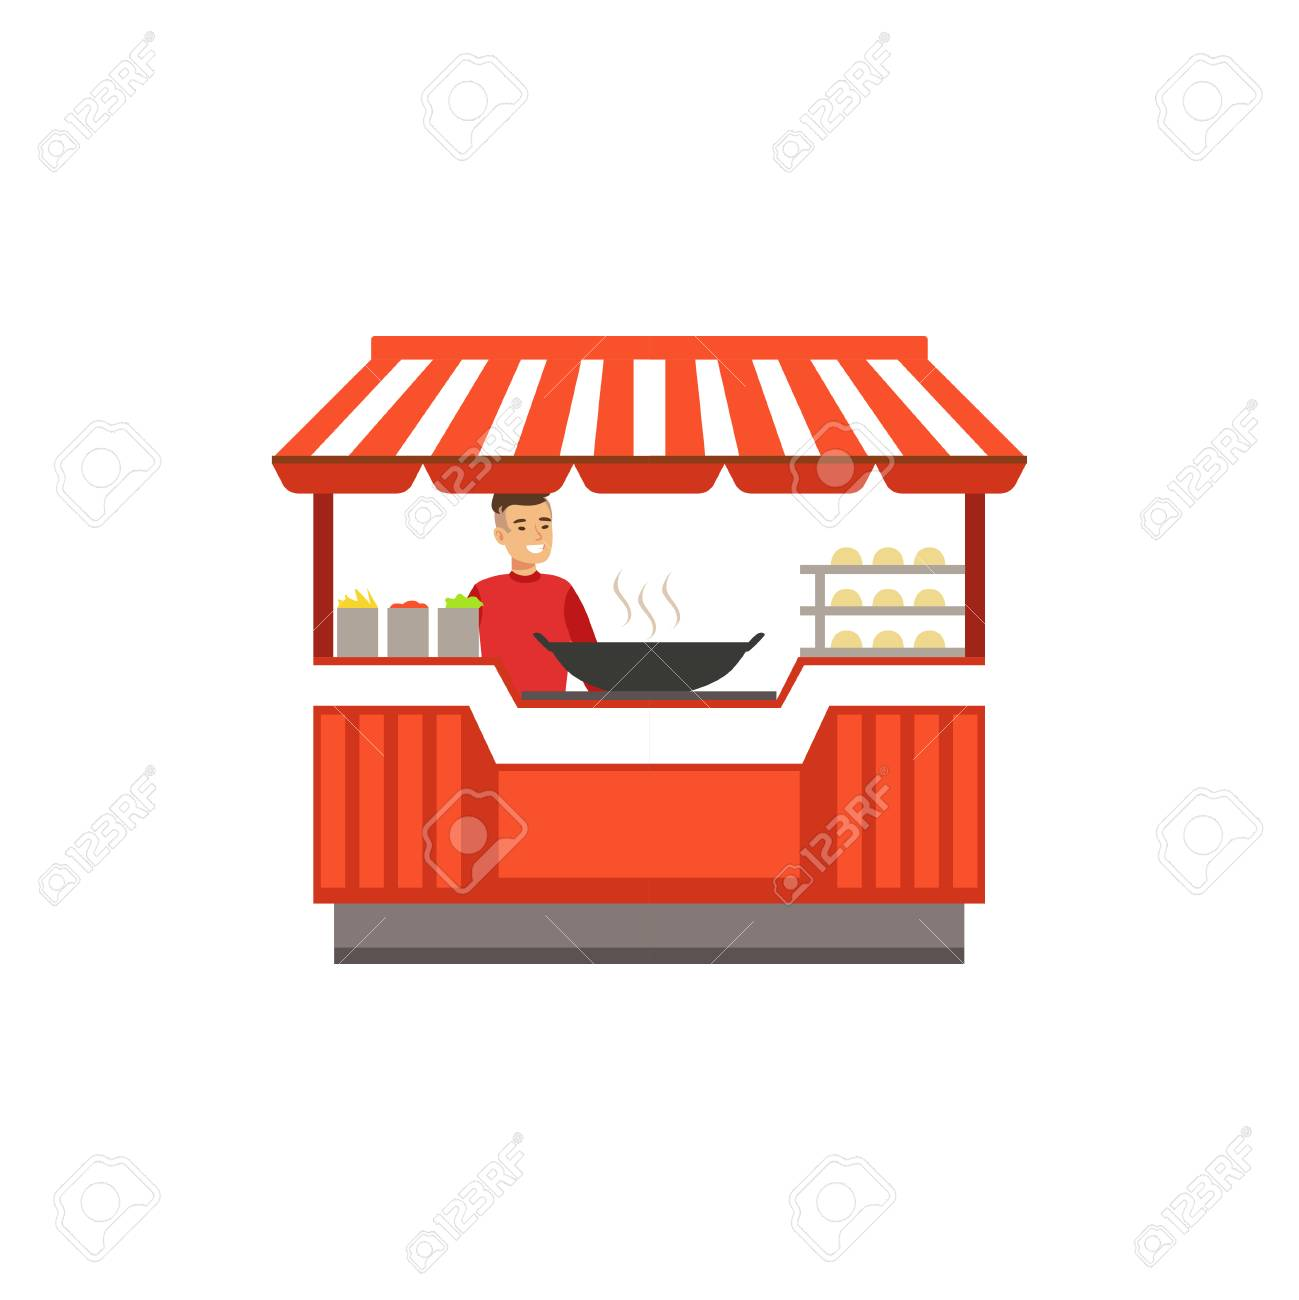 Flat street food kiosk with barbecue